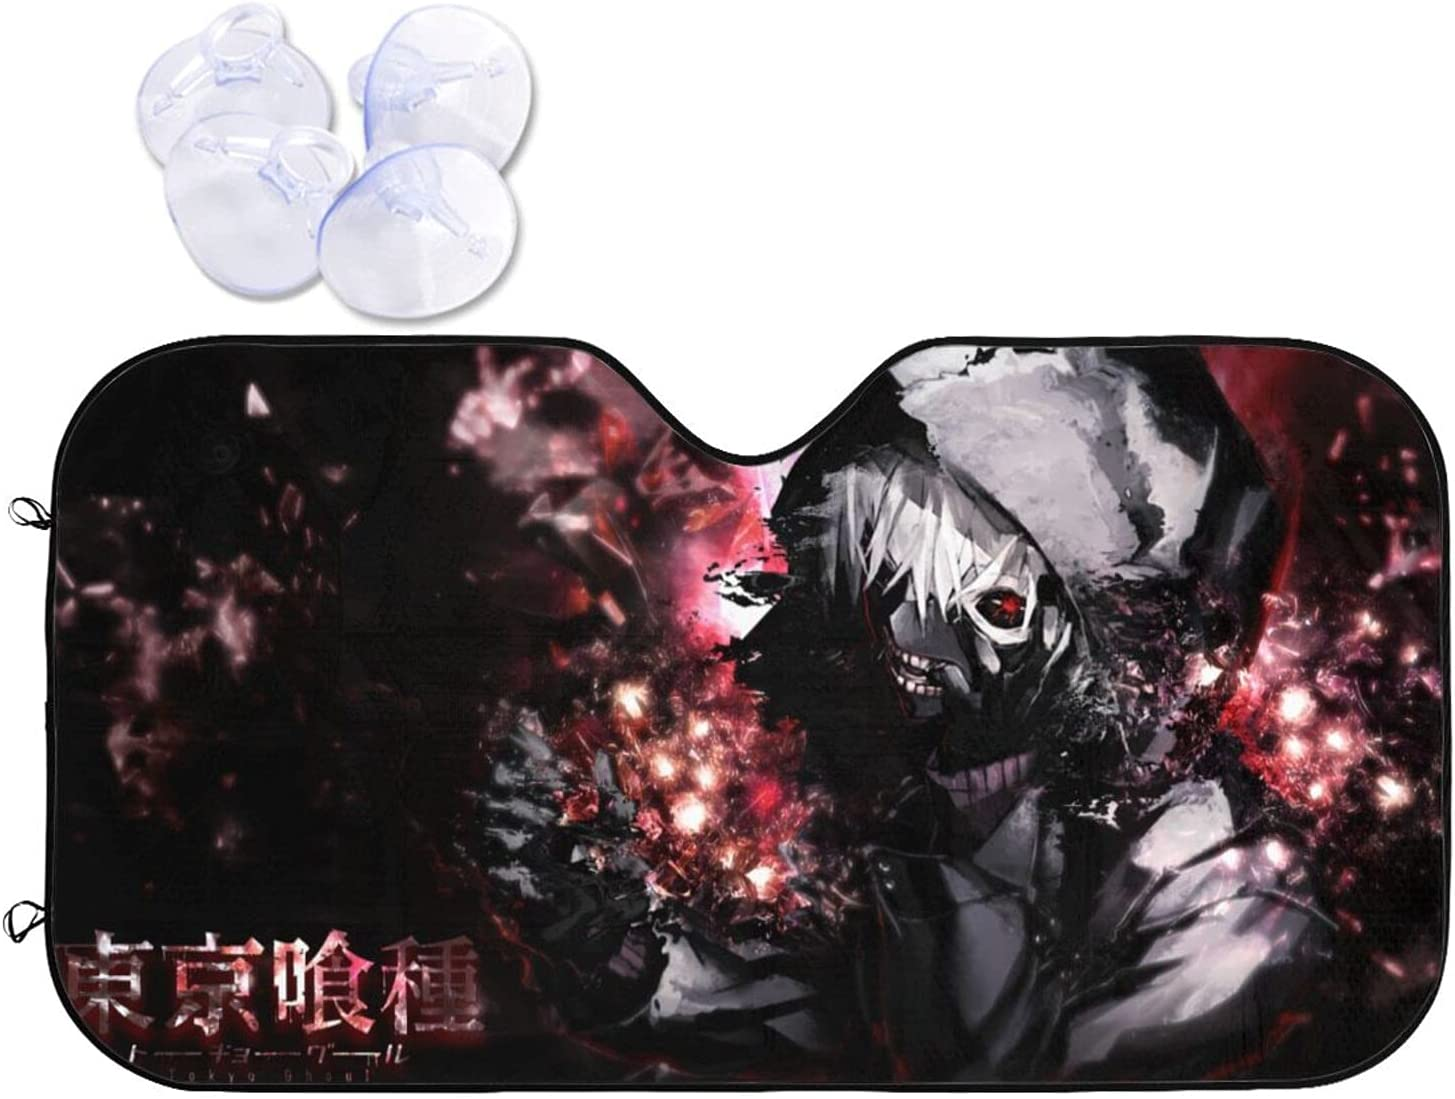 Tokyo Ghoul Soldering Car Sunshade Heat Prevention Sun Free Shipping New Viso and Windshield